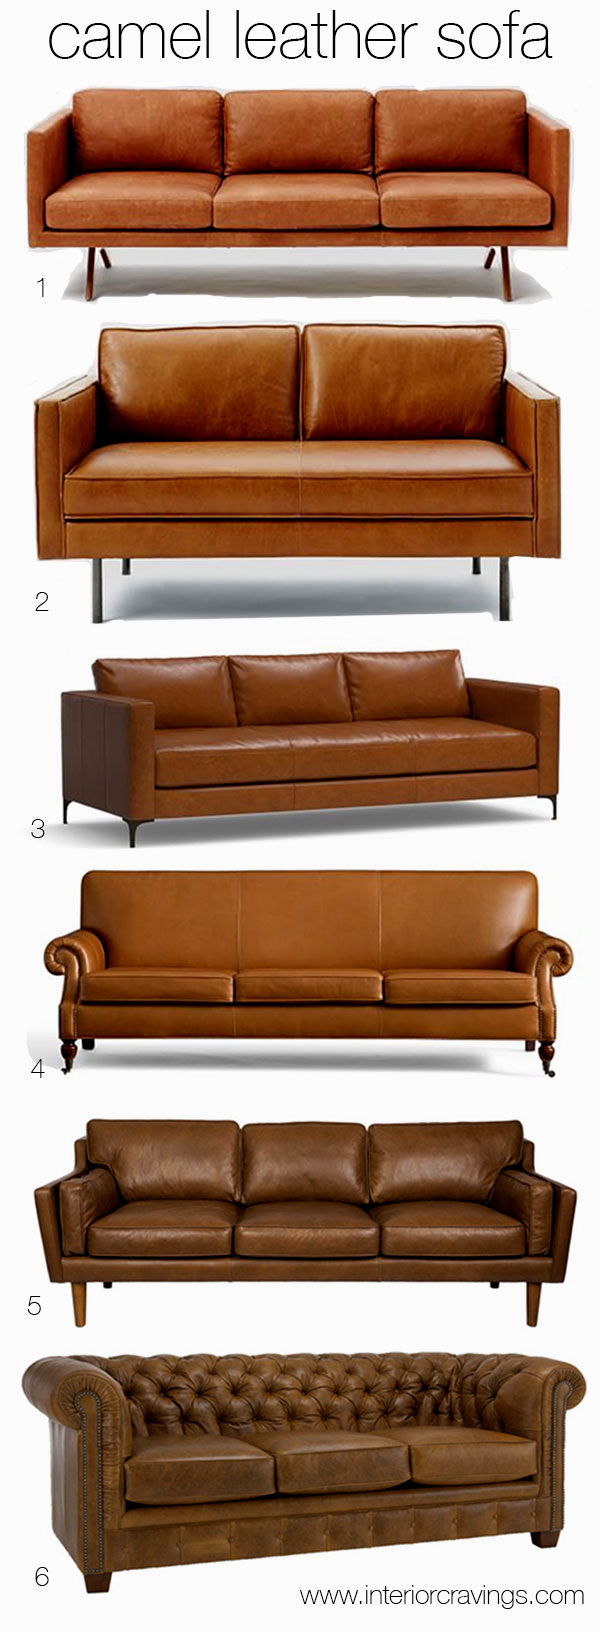 lovely west elm leather sofa image-Cute West Elm Leather sofa Design